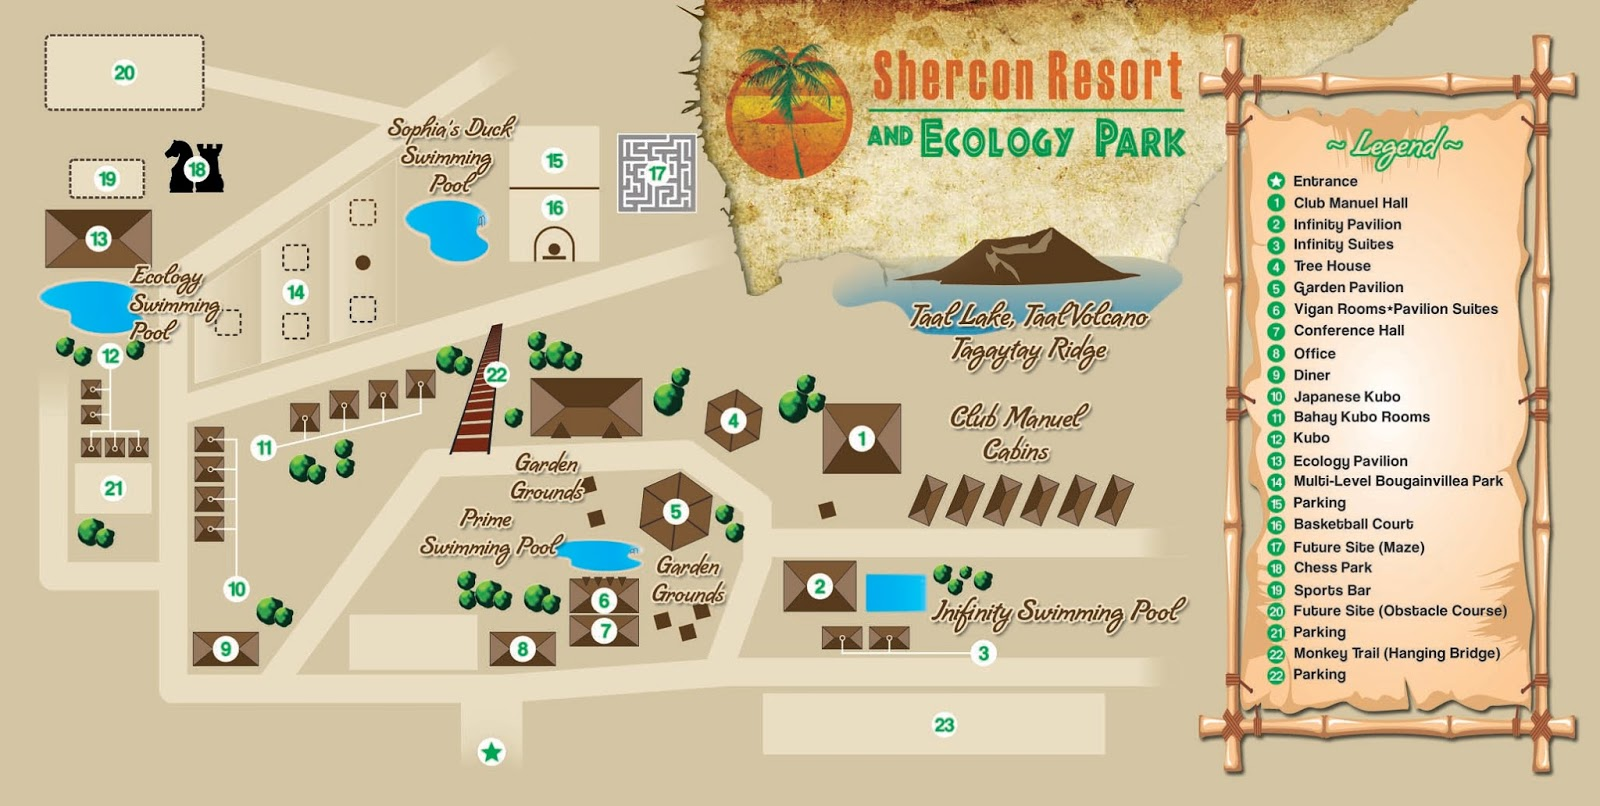 Batangas Shercon Resort And Ecology Park